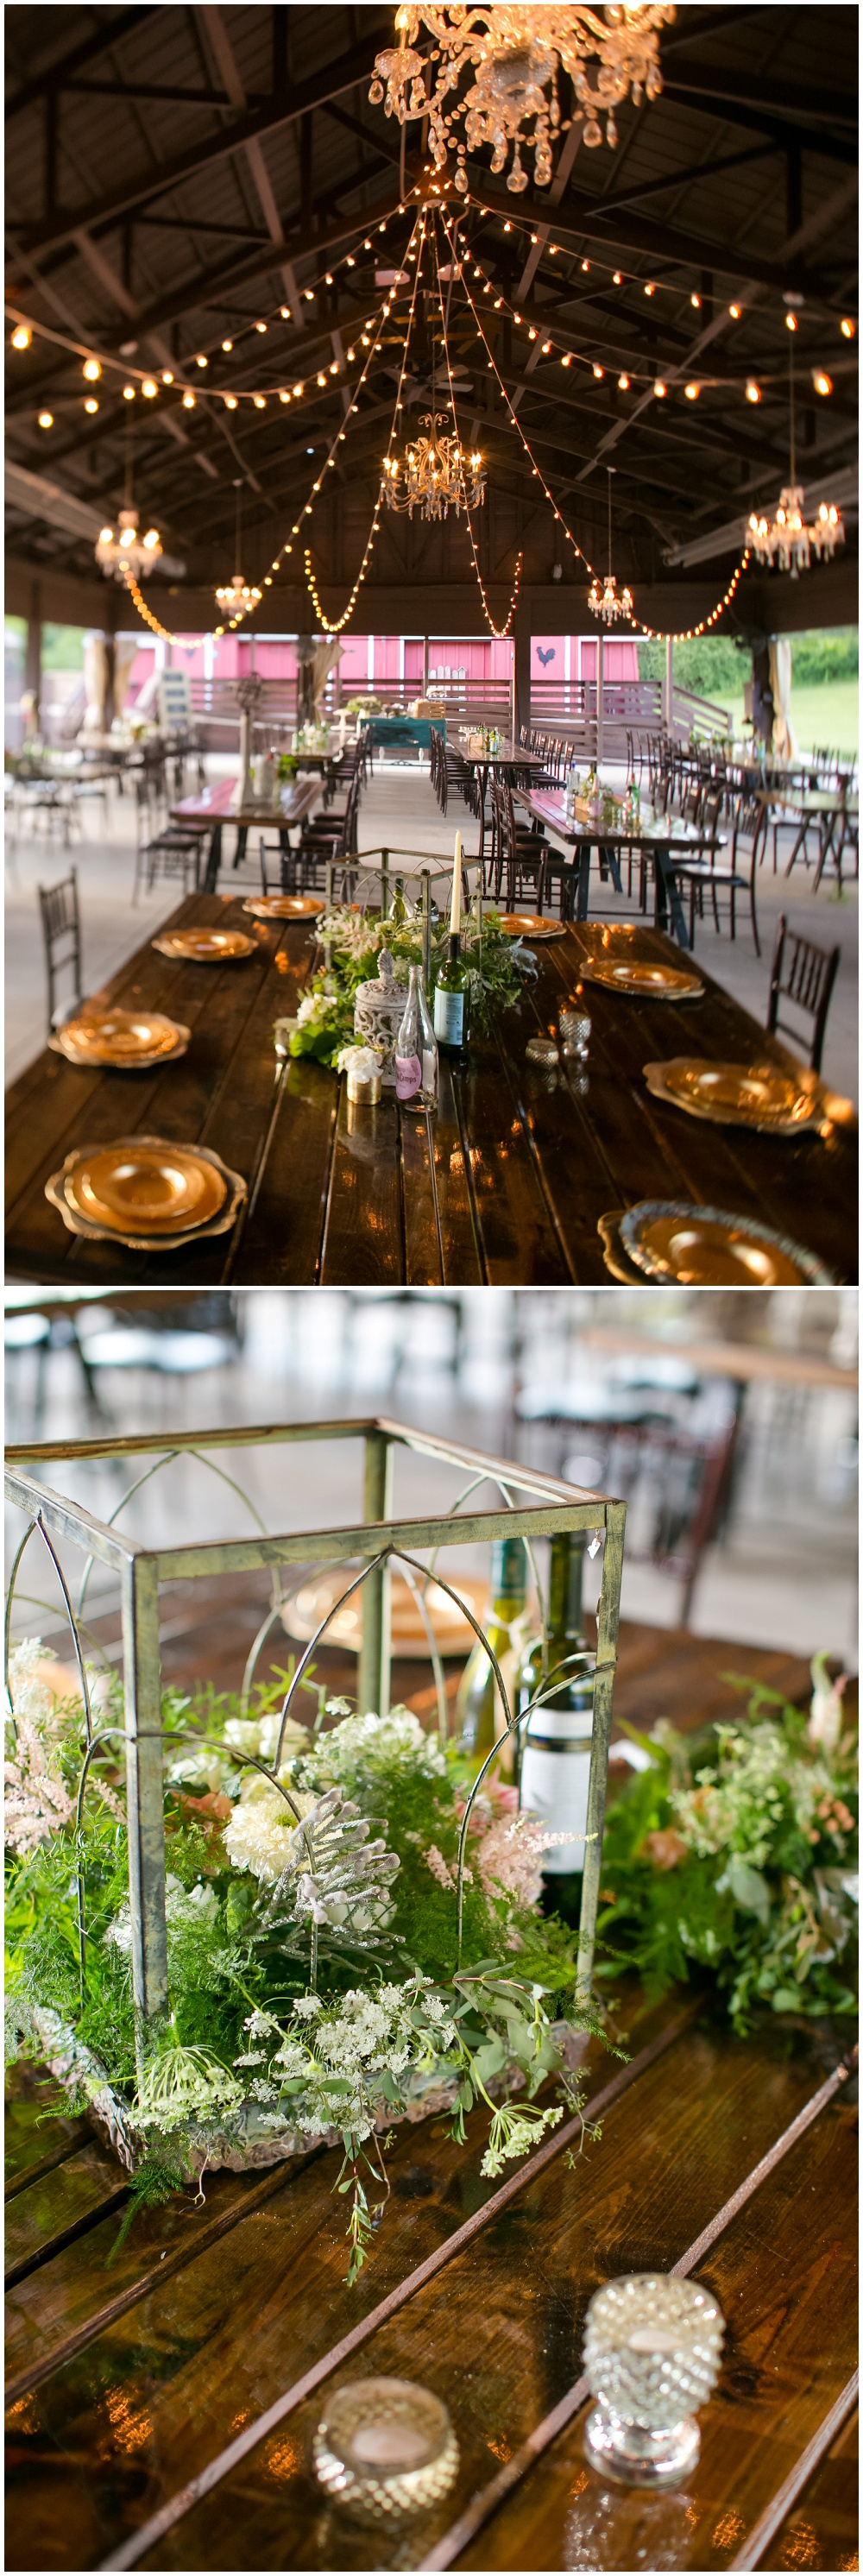 wedding reception minnetonkmn%0A Head table decor at Semple Mansion in Minneapolis  MN  Linens by Apres Party  Rental  Floral by Julia u    s Blooms  Photos by Minnesota wedding photogra u